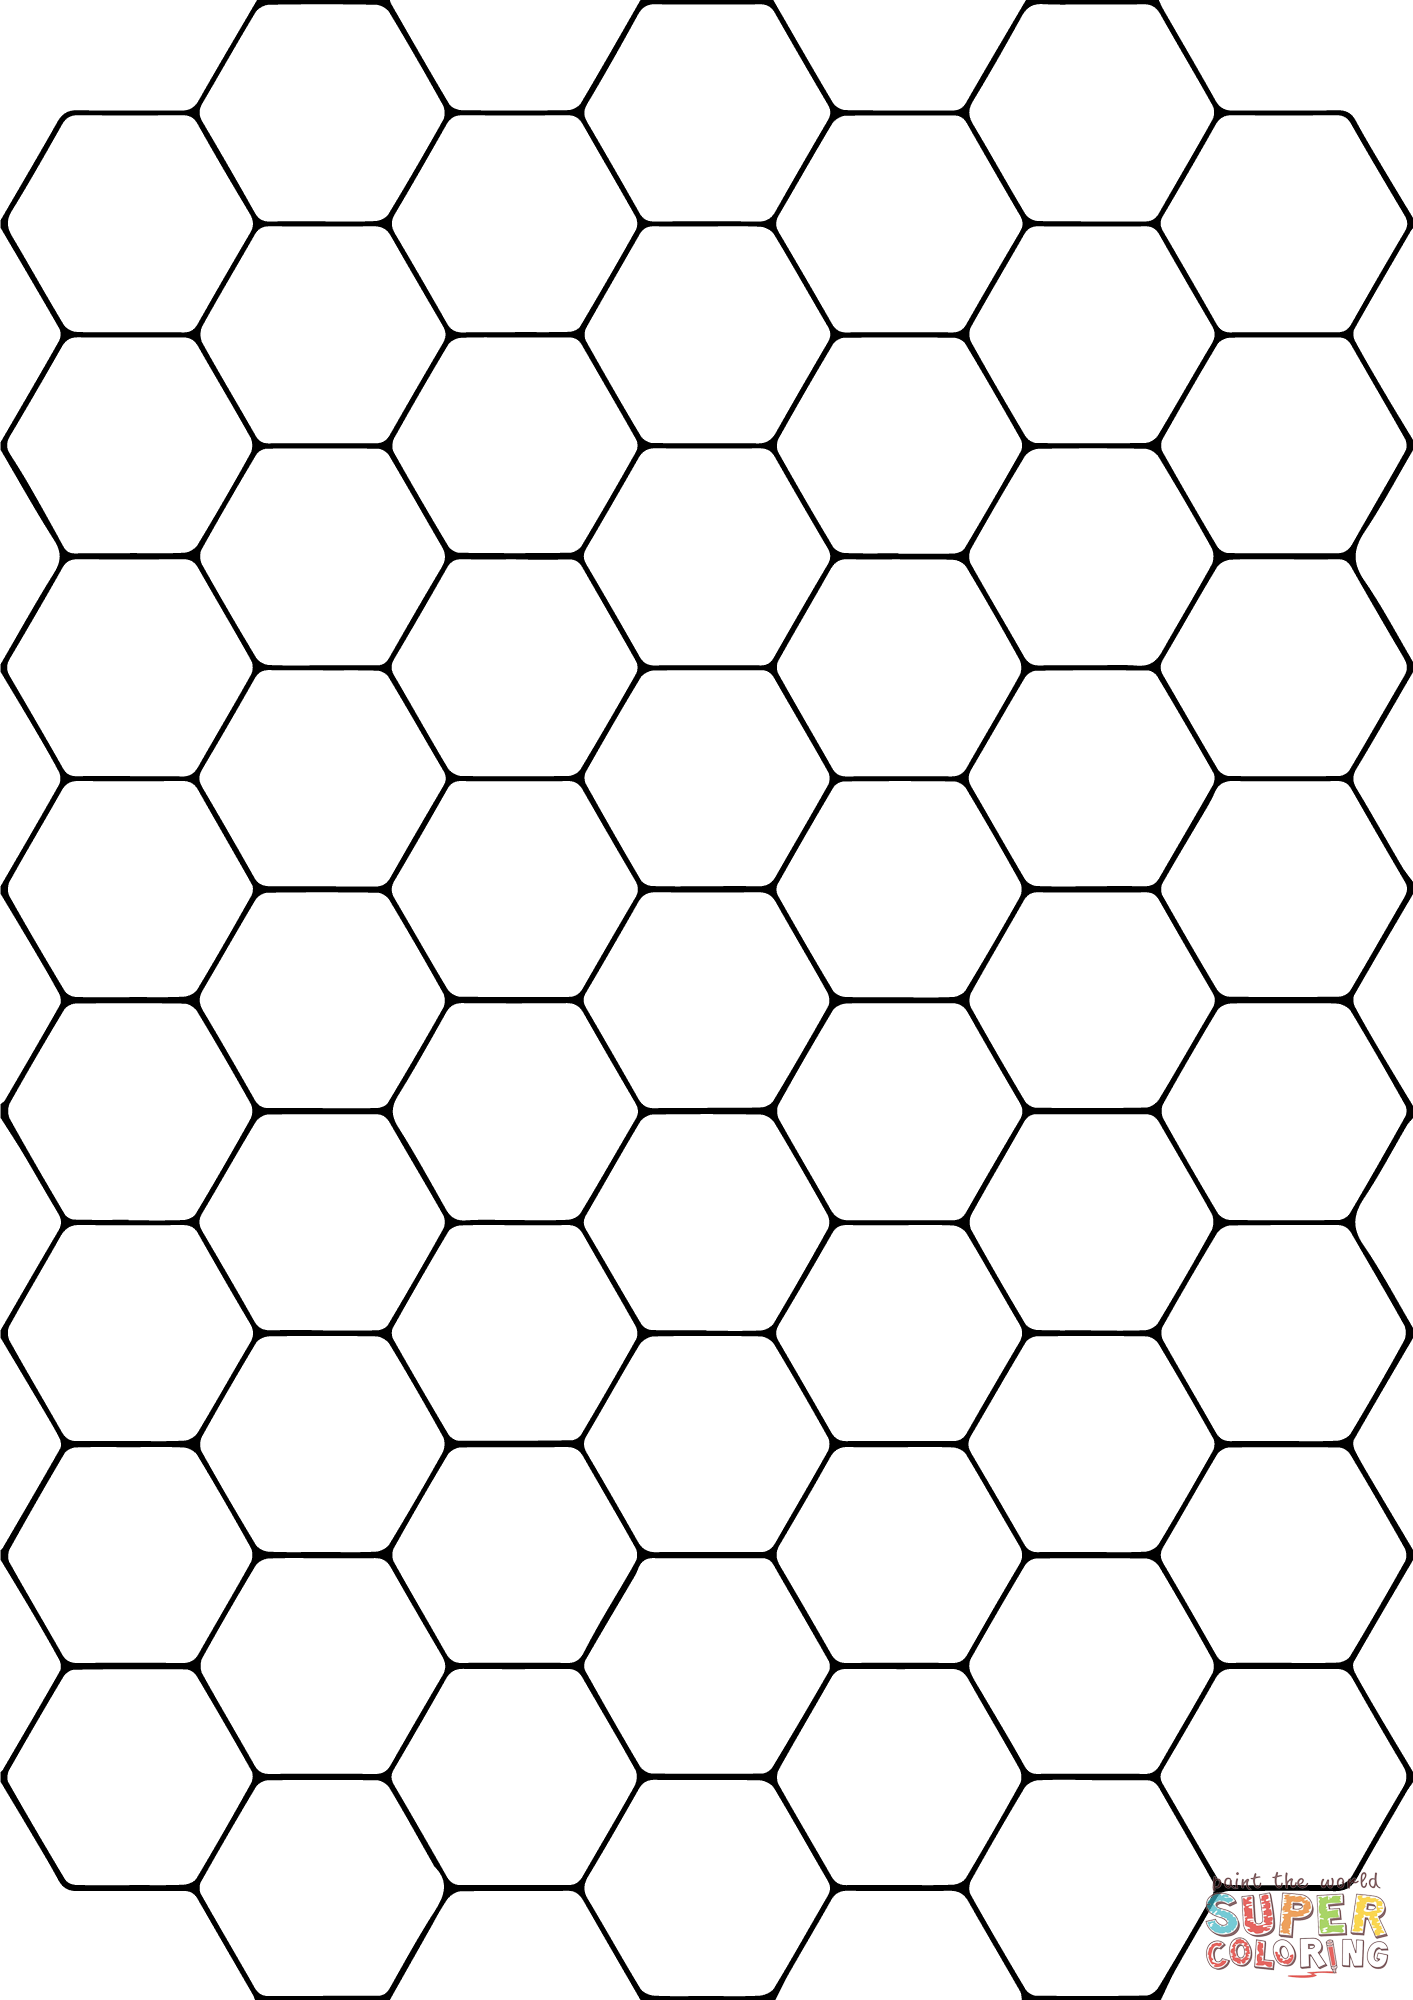 Tessellation with Hexagon coloring page | Free Printable Coloring ... #bible